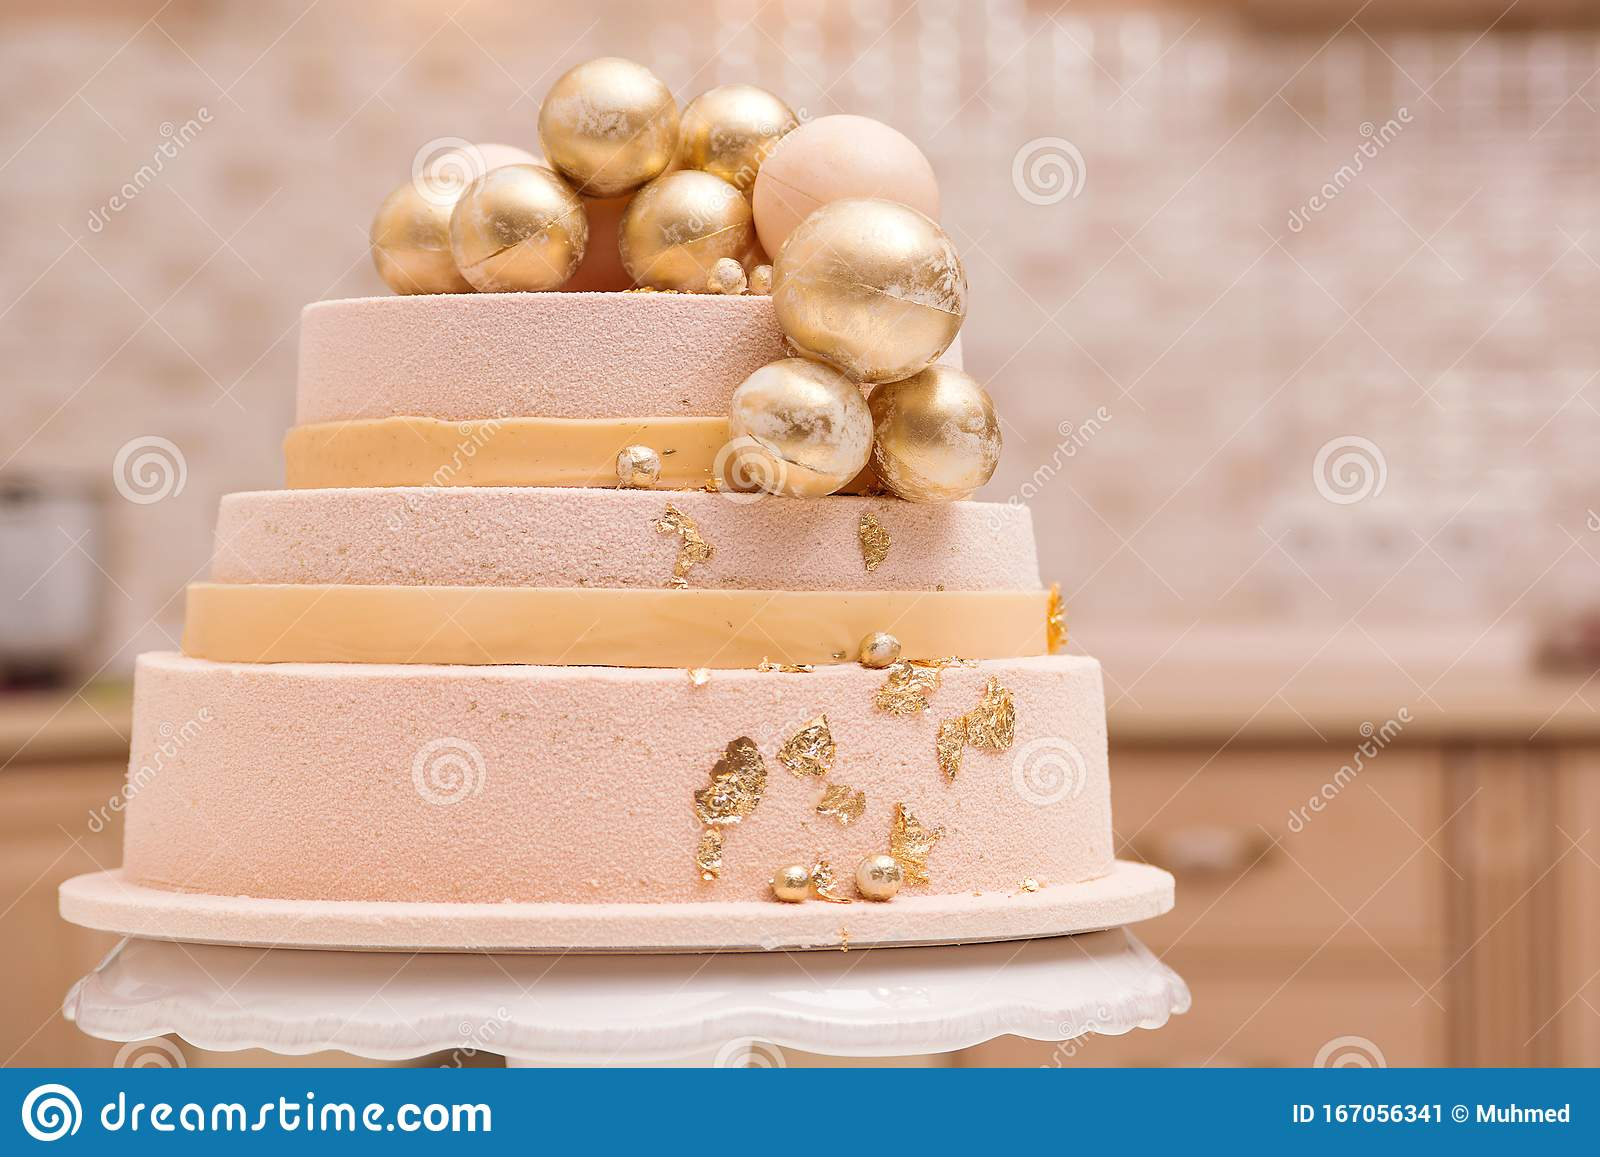 Stupendous Tiered Birthday Cake On White Plate Wedding Cake Decorated With Funny Birthday Cards Online Alyptdamsfinfo